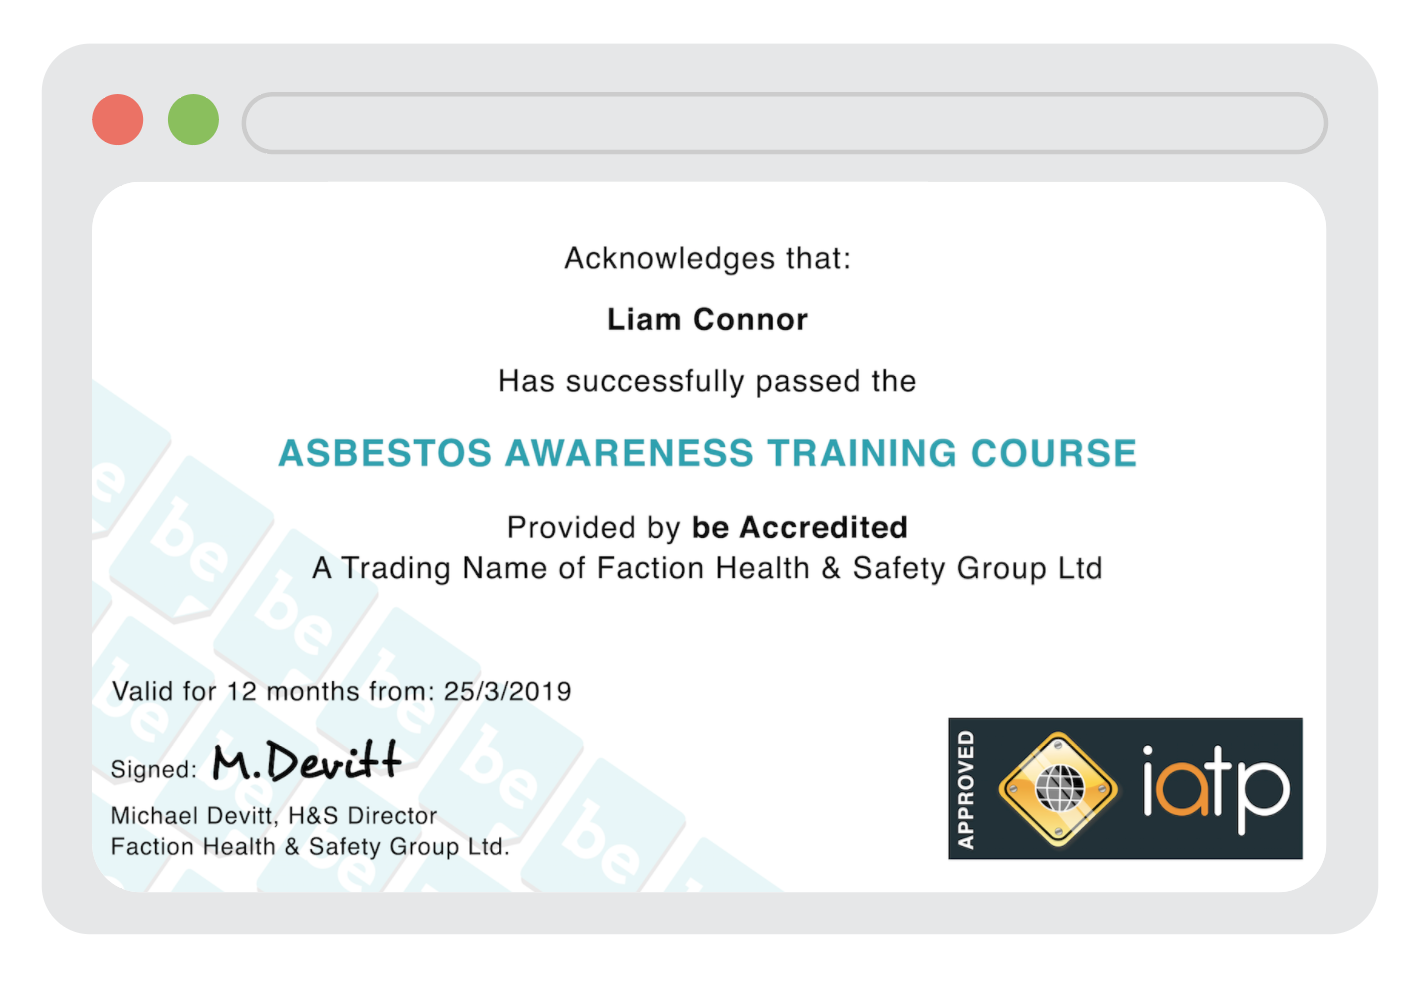 Unlimited IATPAsbestos Training - IATP accredited, online asbestos awareness training, for all staff & sub-contractors.